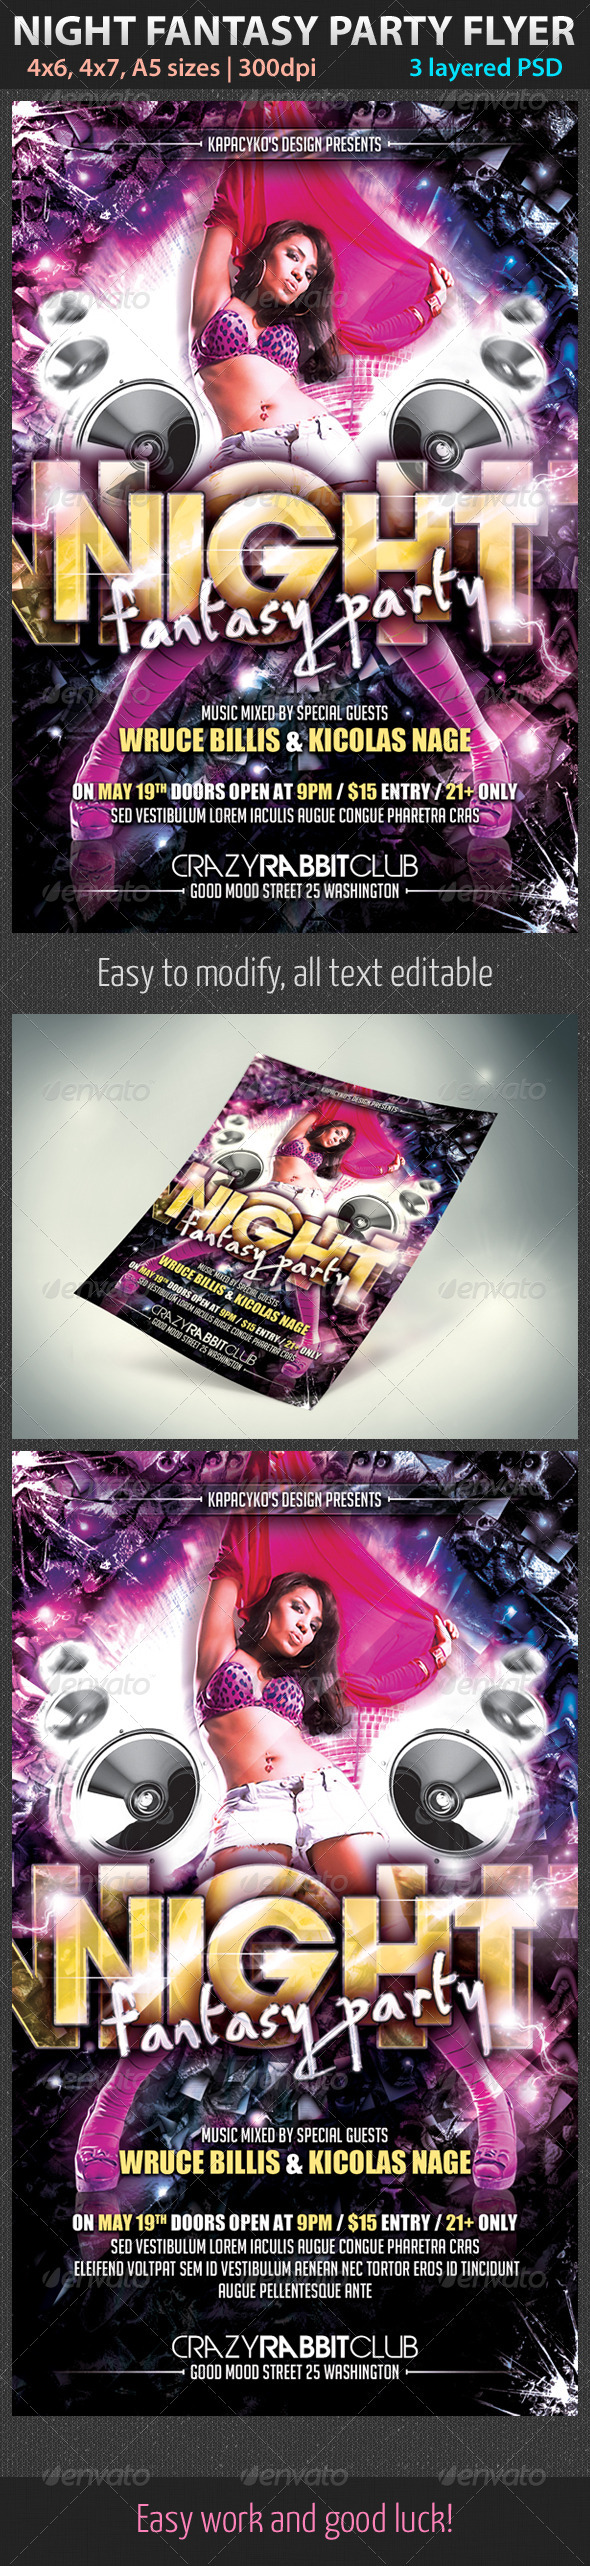 Night Fantasy Party Flyer - Clubs & Parties Events